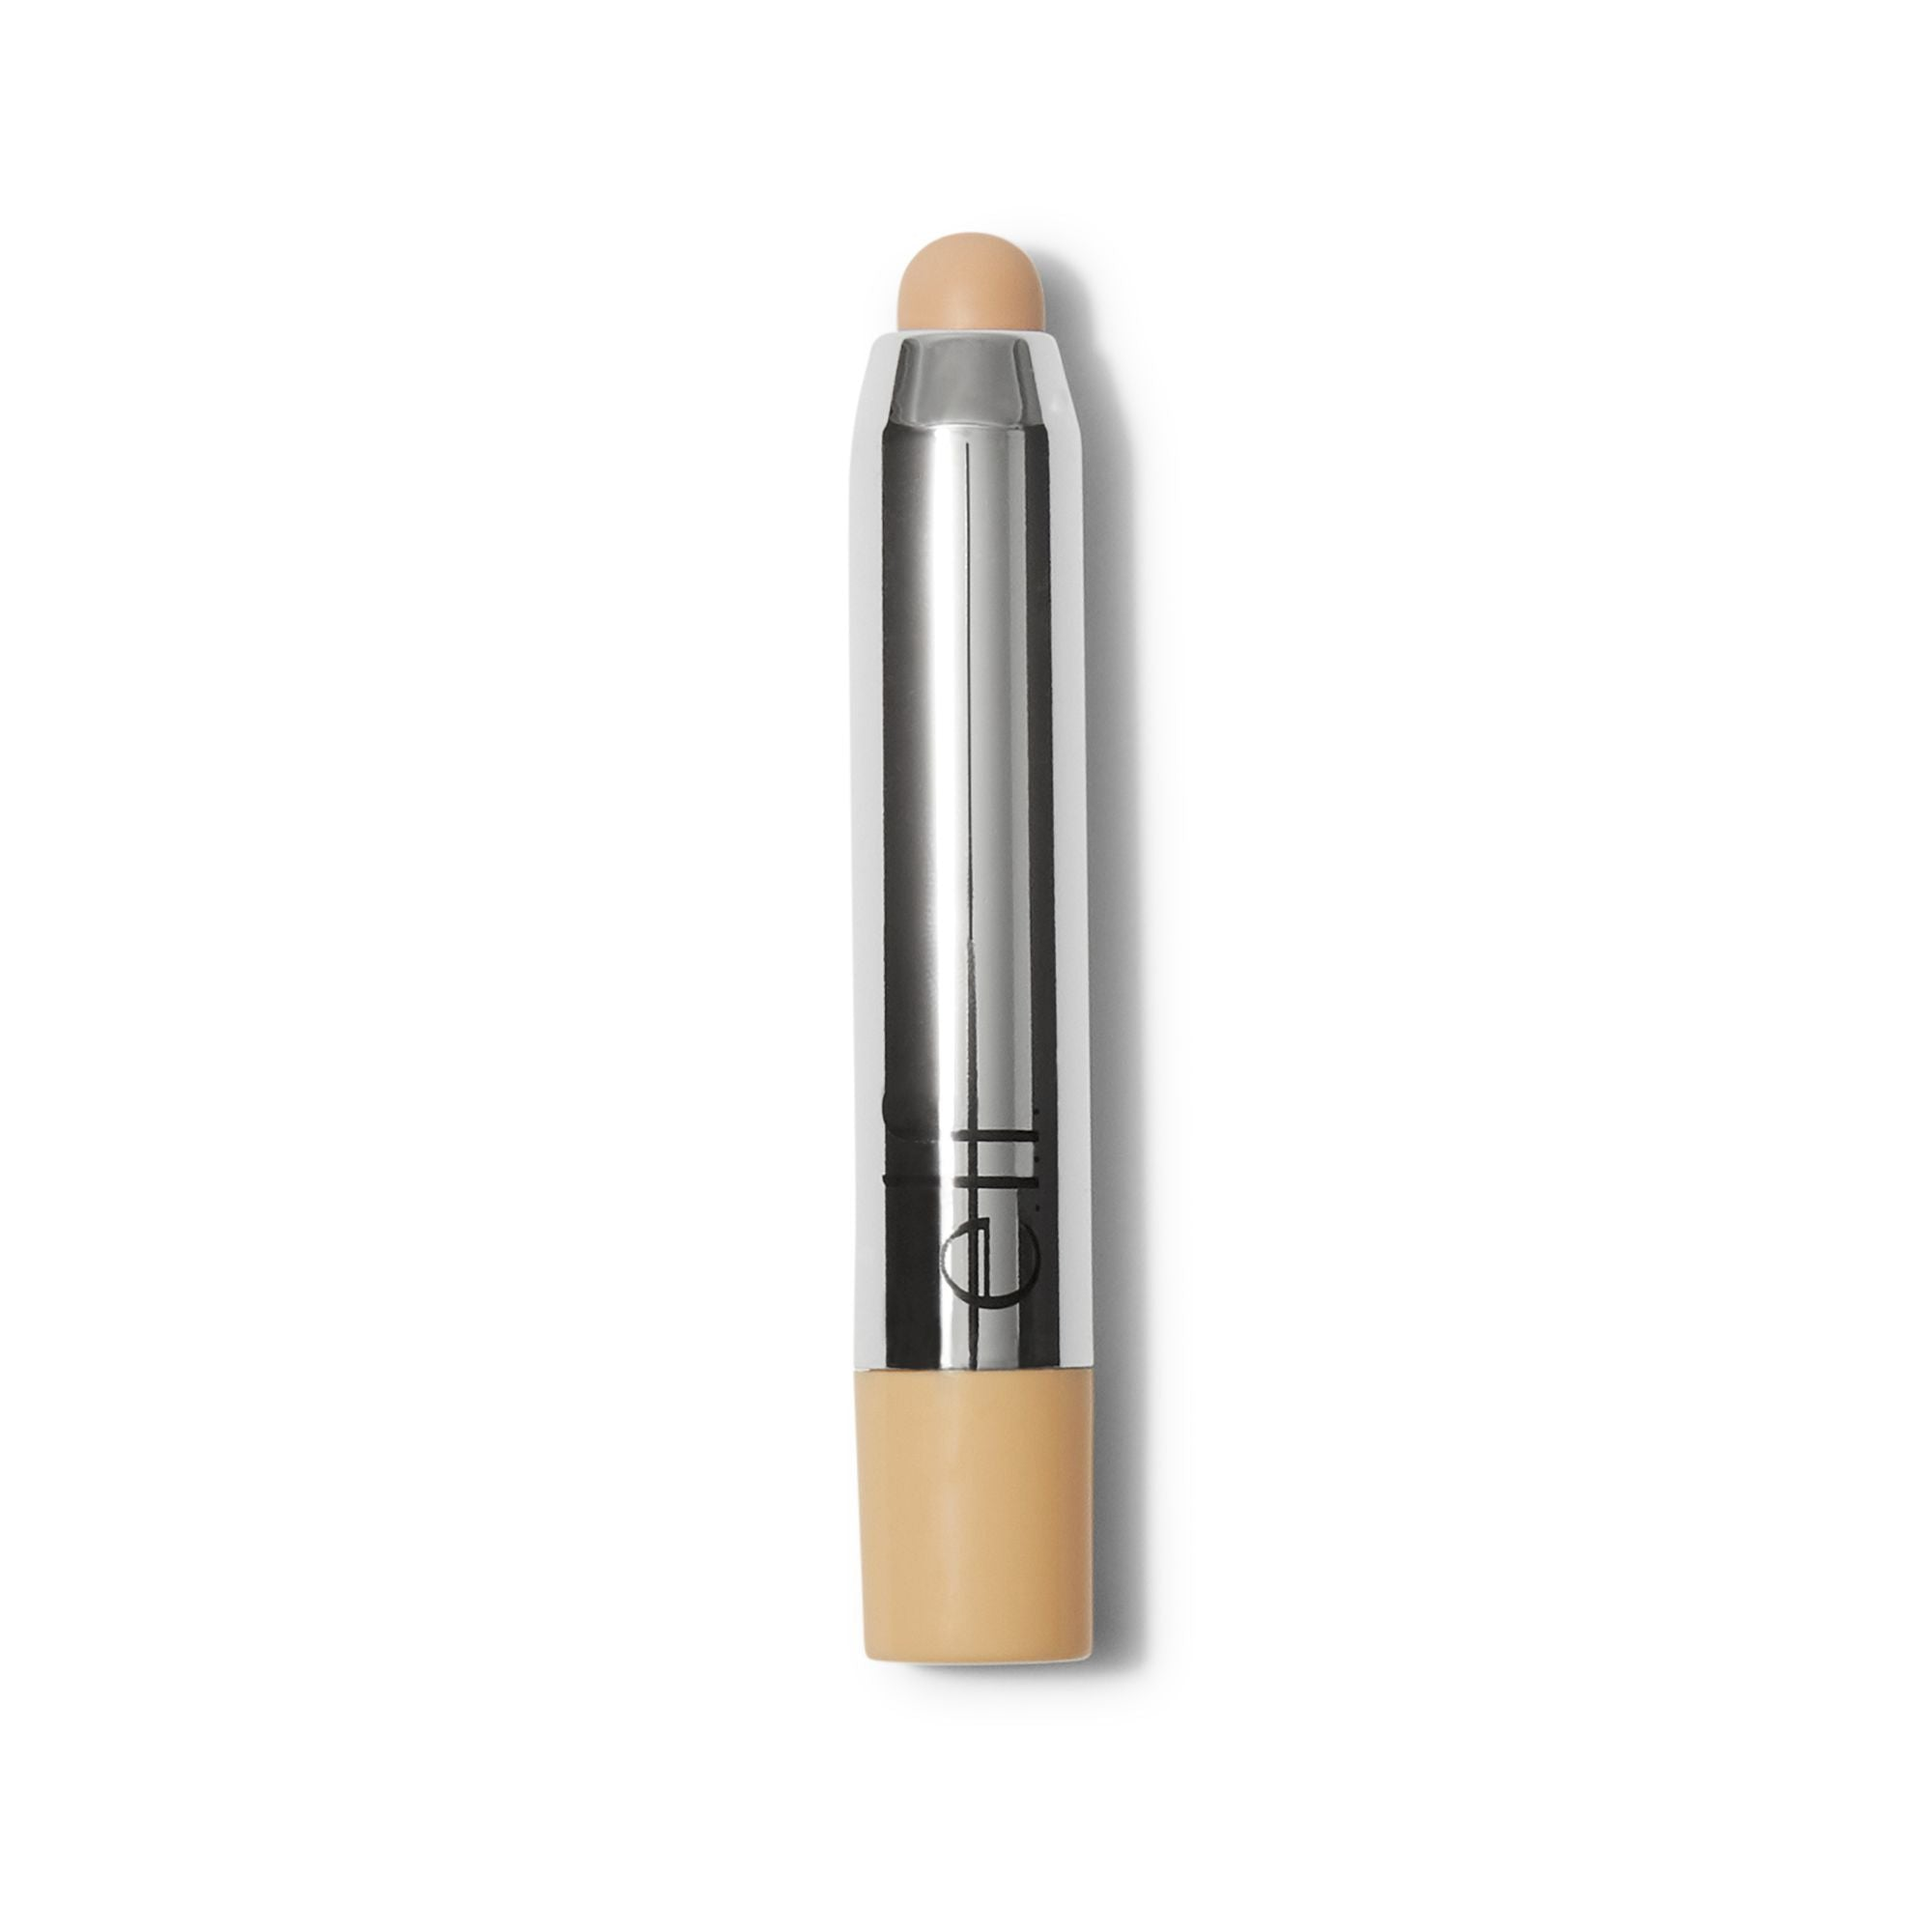 e.l.f. Beautifully Bare Lightweight Concealer Stick | HODIVA SHOP